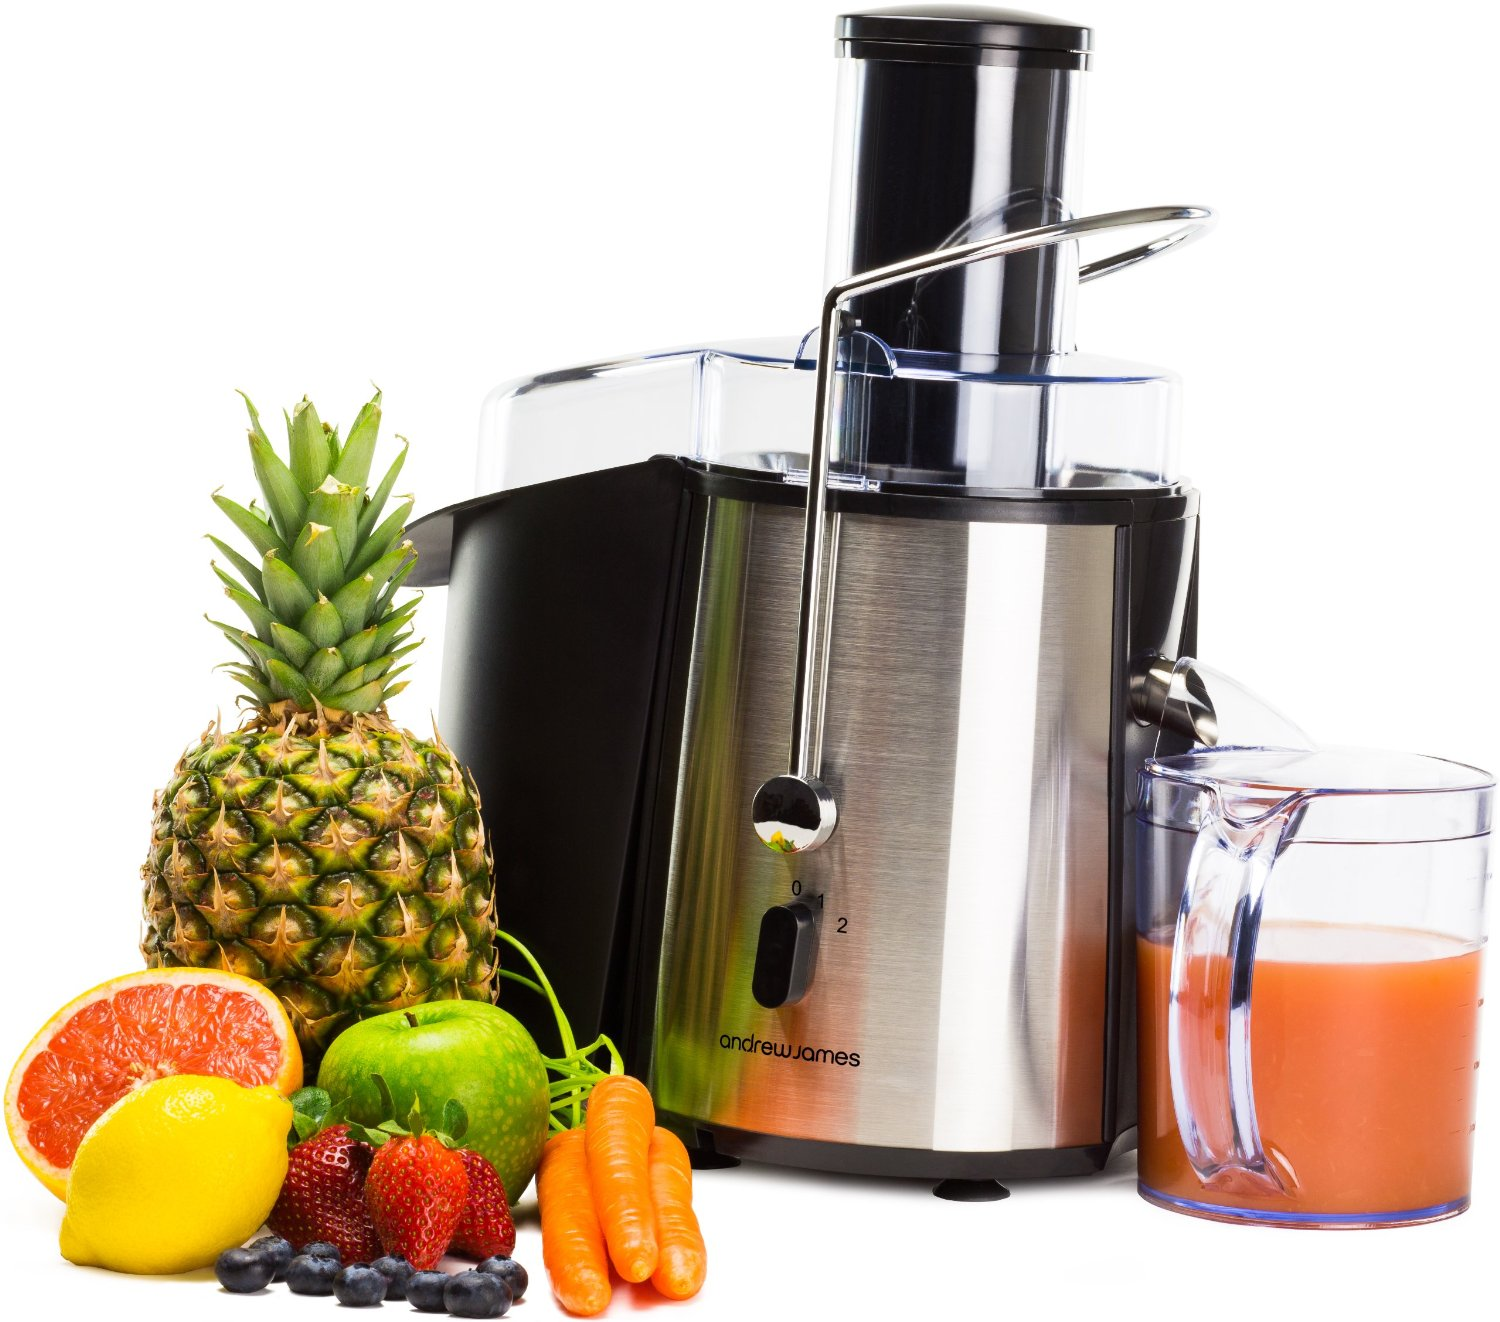 Andrew James Professional Fruit Power Juicer